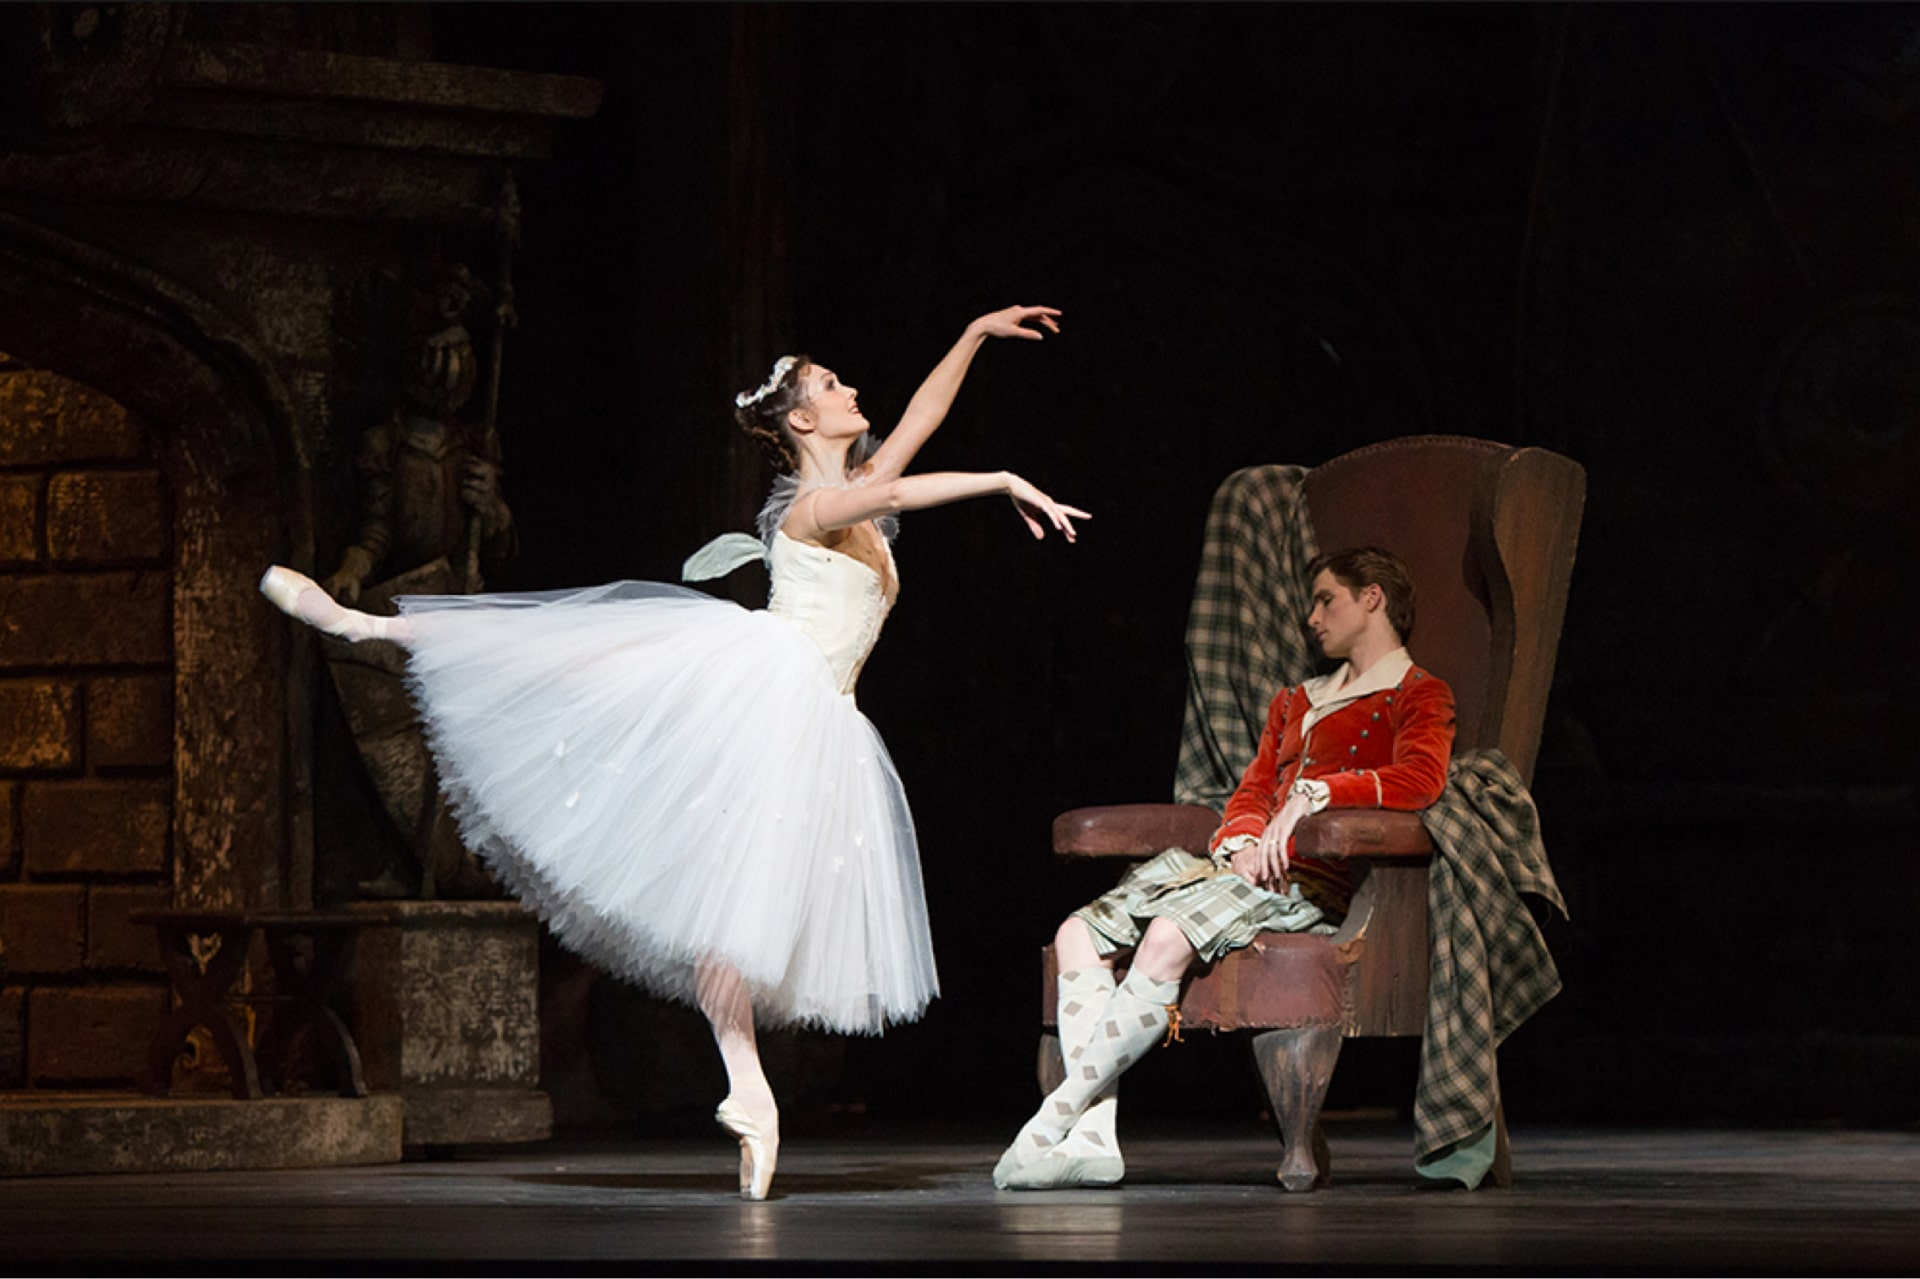 Ballerina in white dress holds graceful arabesque near dancer in kilt and red jacket sleeping in leather armchair.